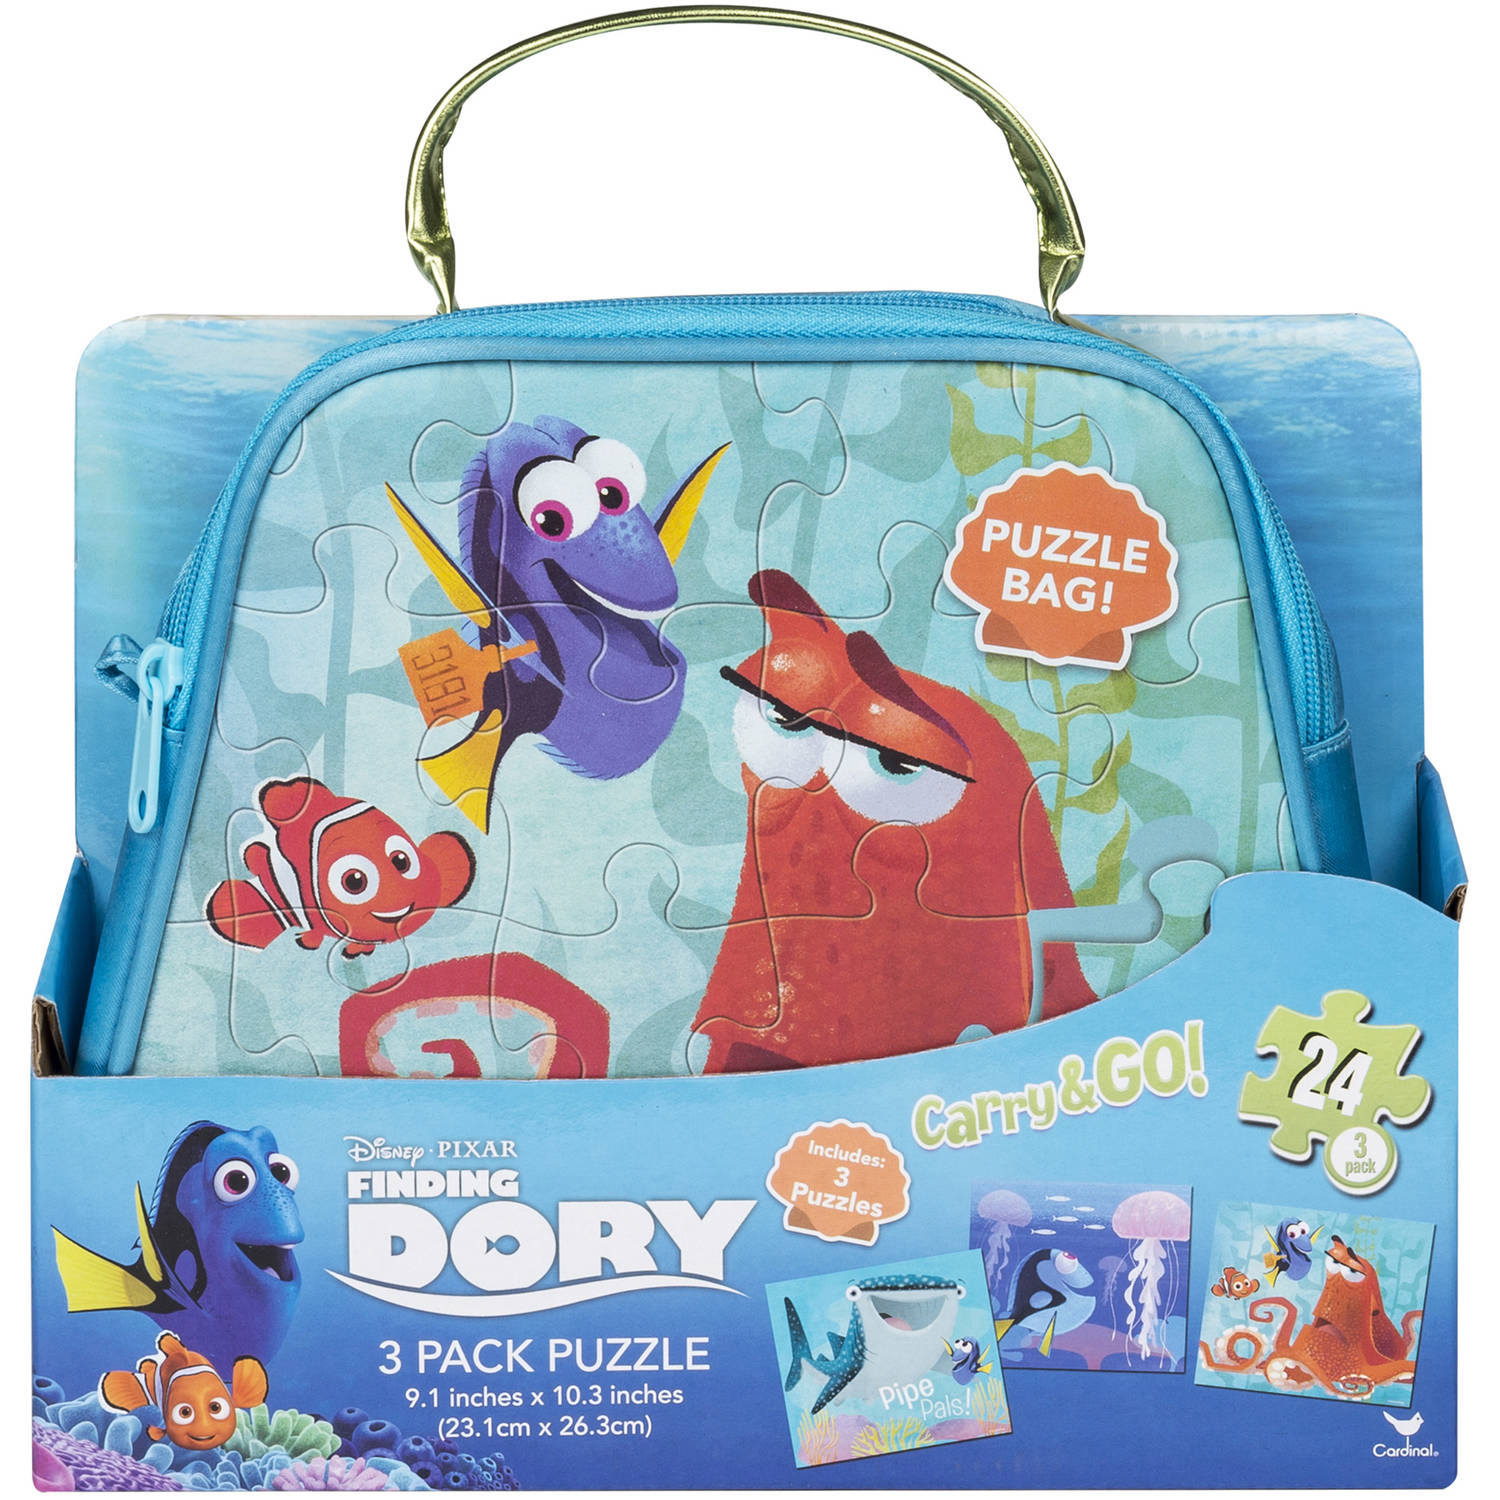 Finding Dory Carry and Go, 3 Pack Puzzle